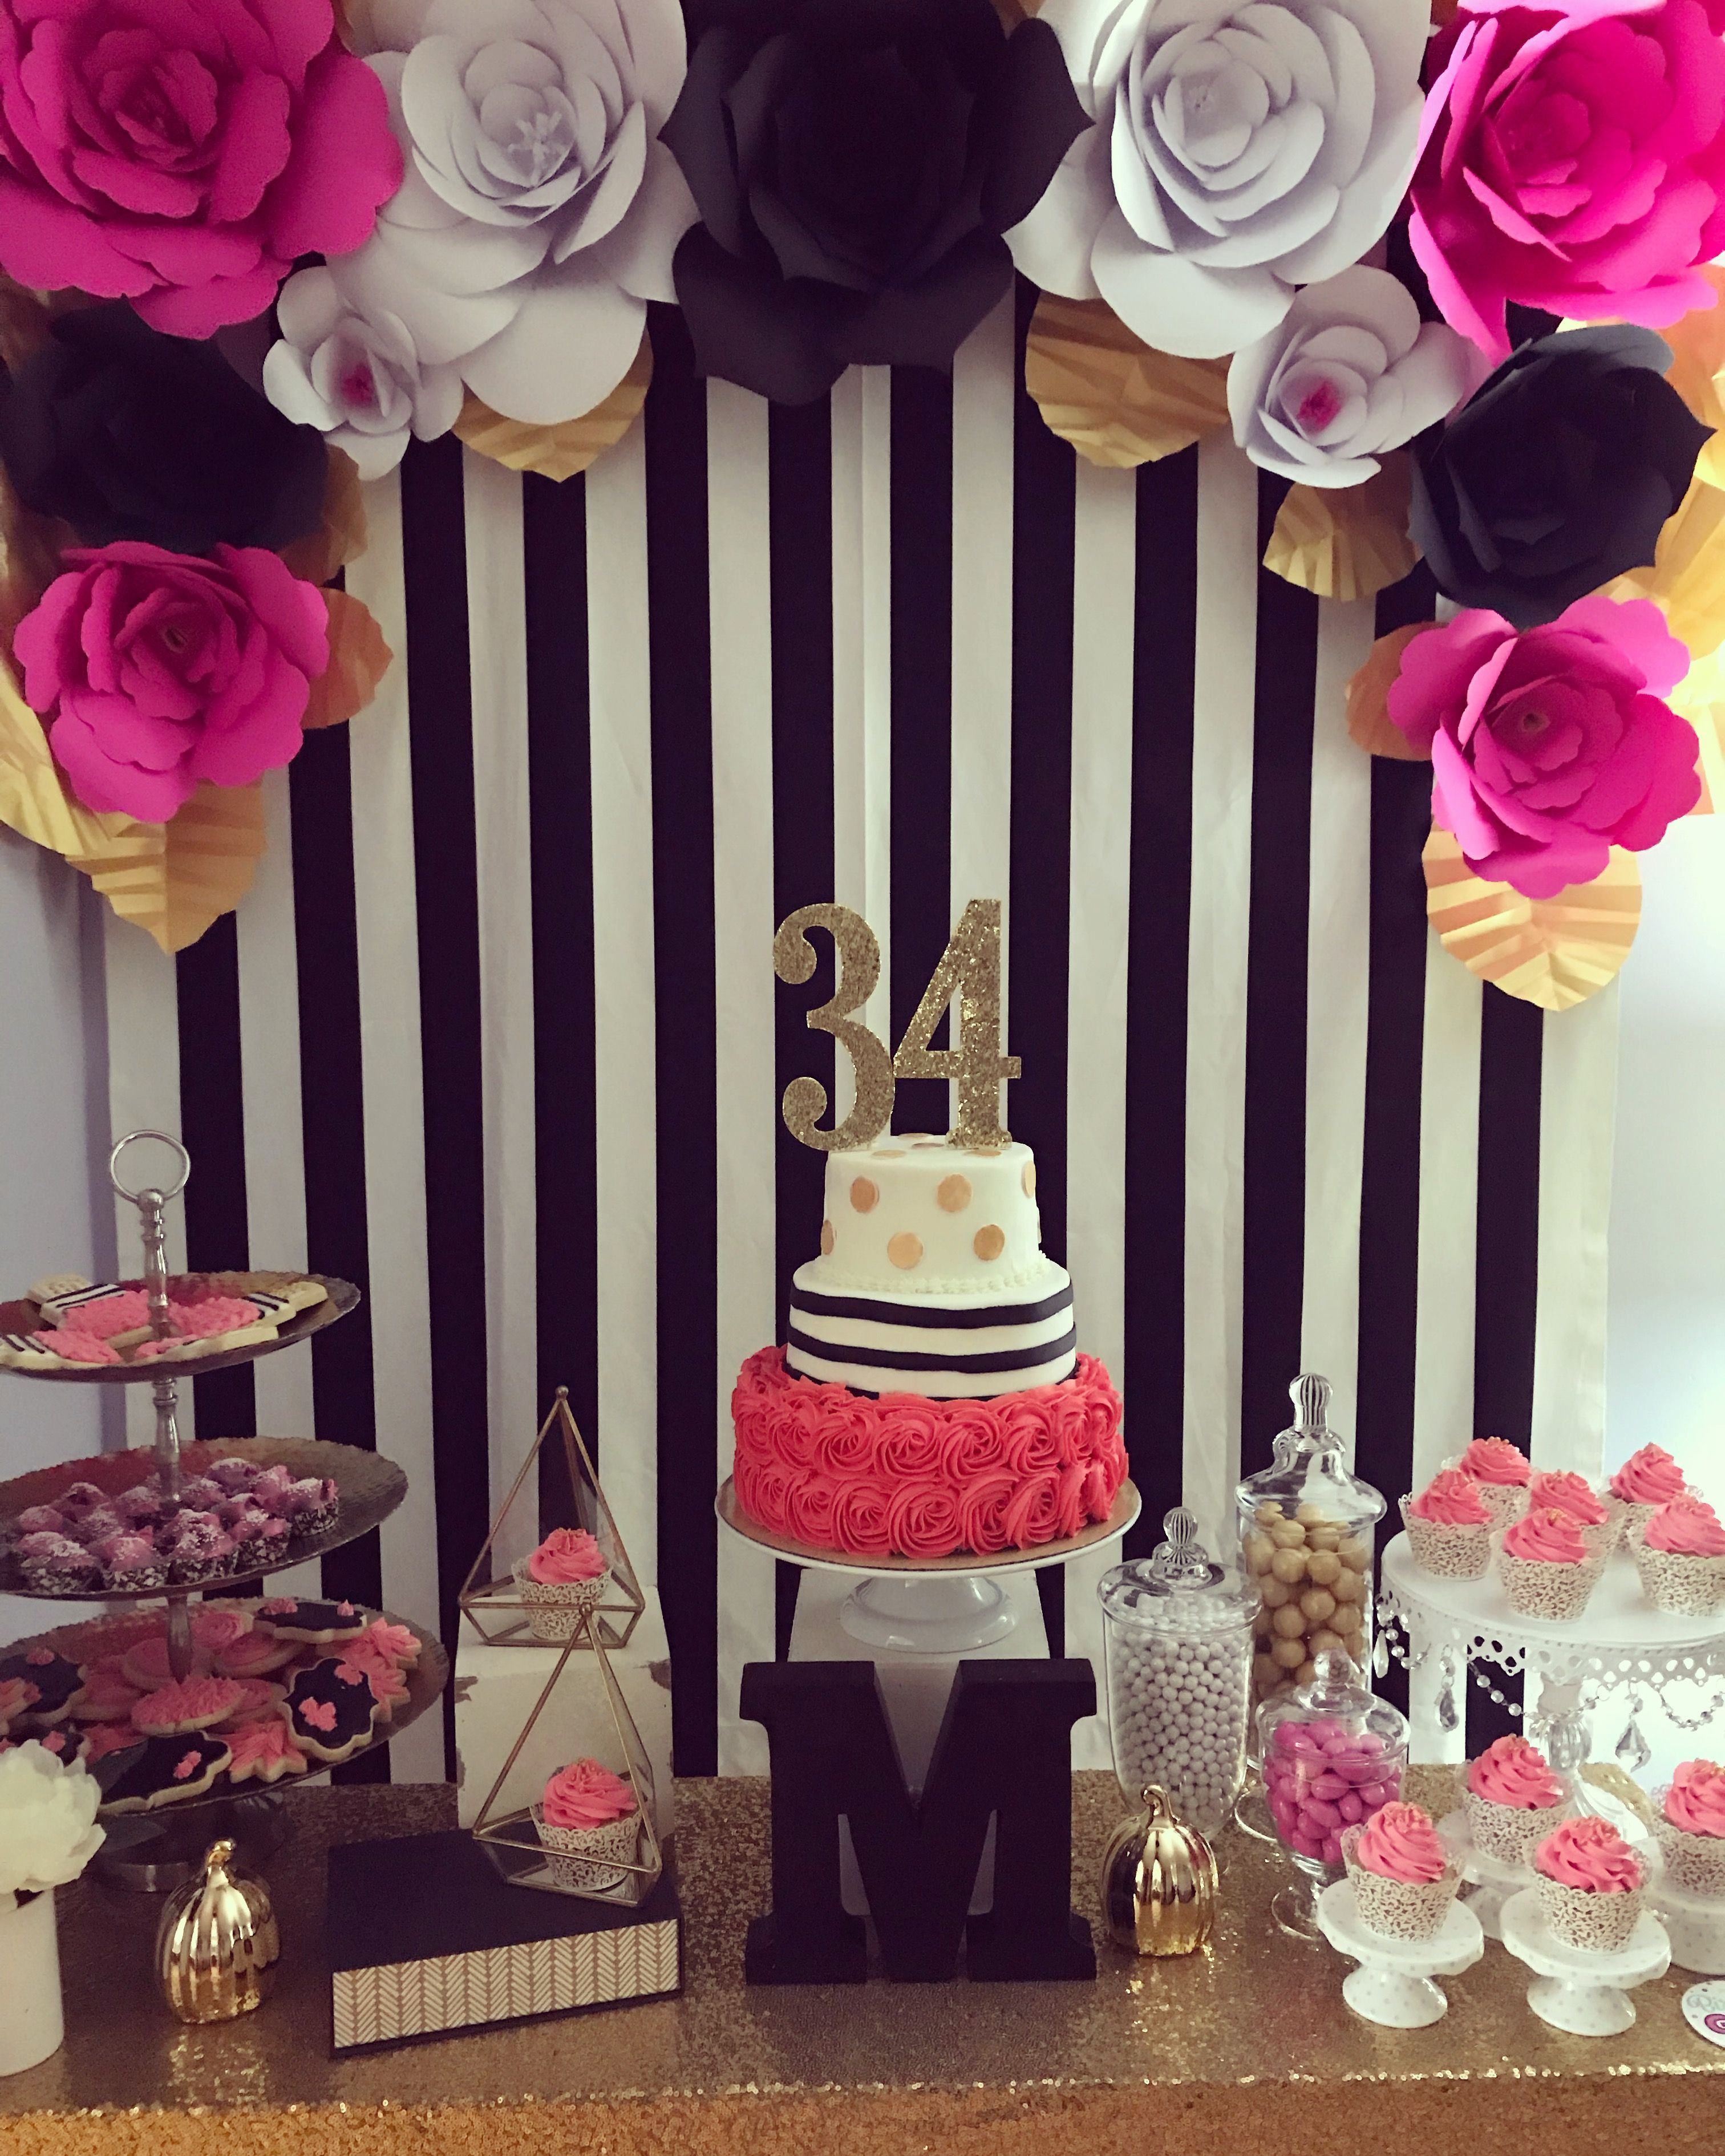 Kate Spade Inspired Birthday Dessert Table Dessert Table